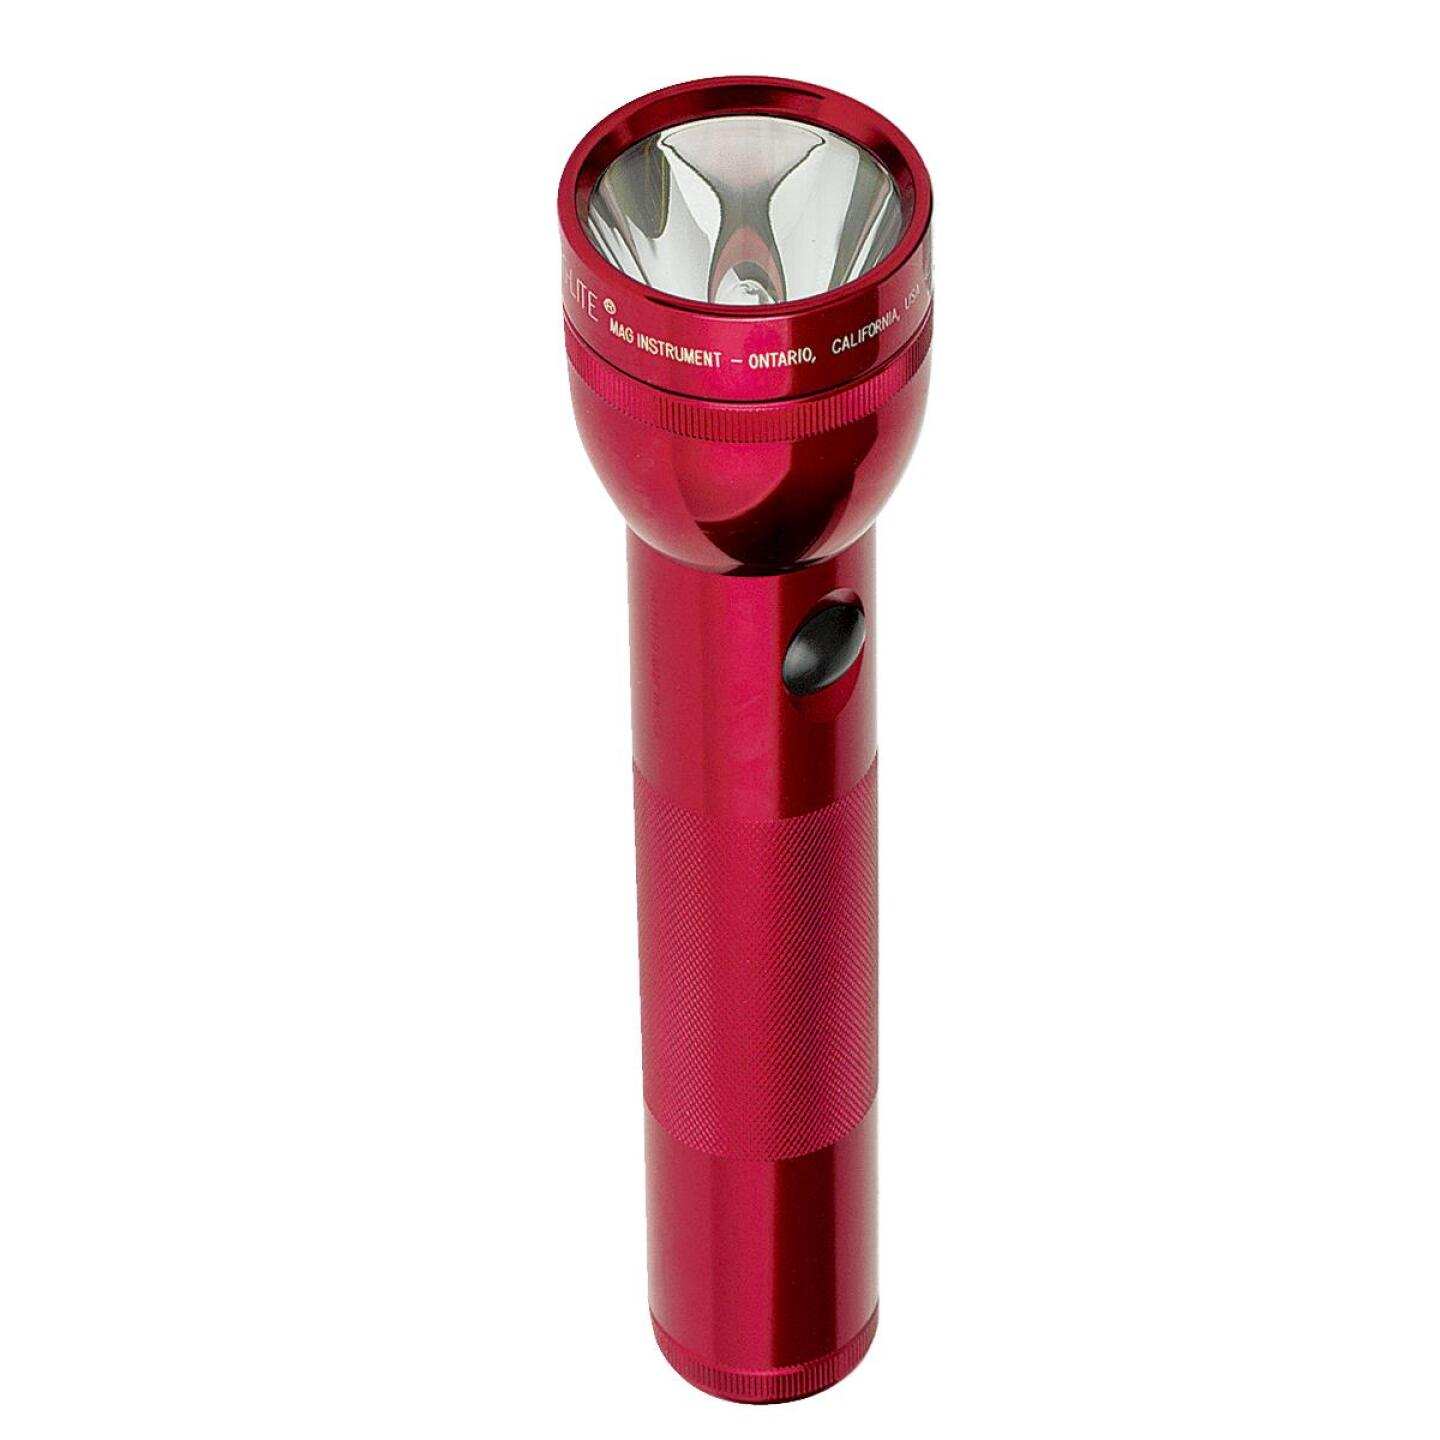 Maglite 27 Lm. Xenon 2D Flashlight, Red Image 3